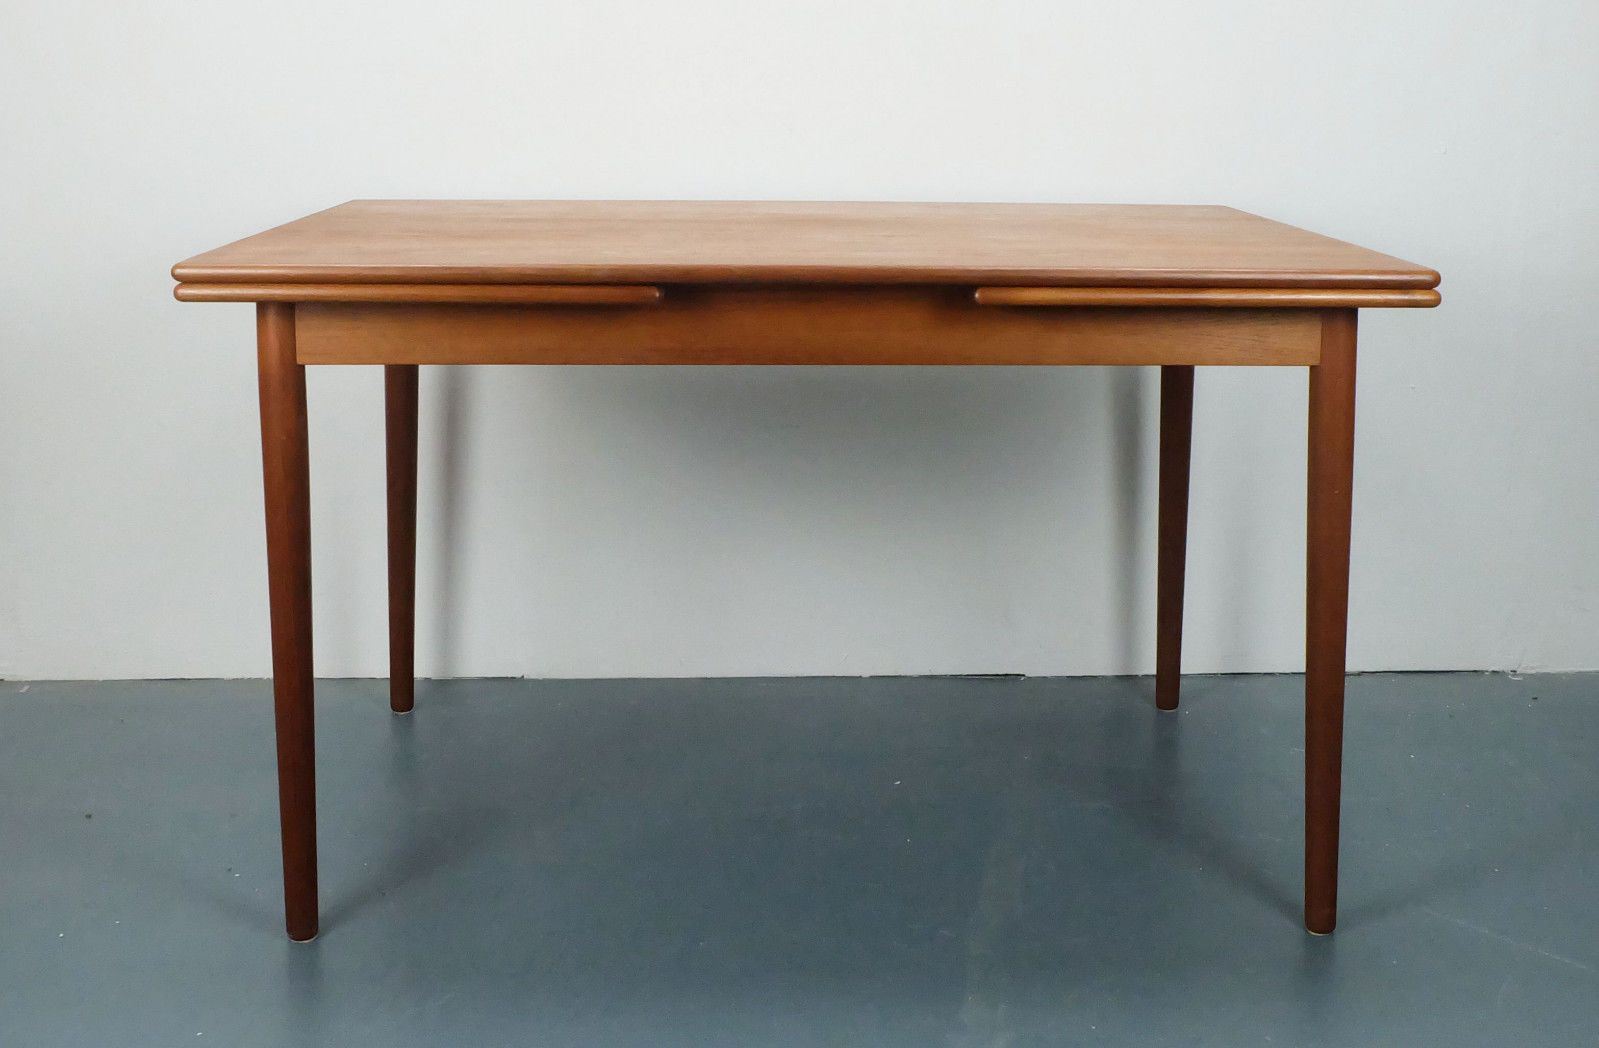 Vintage Danish Extendable Teak Dining Table from G P Farum for